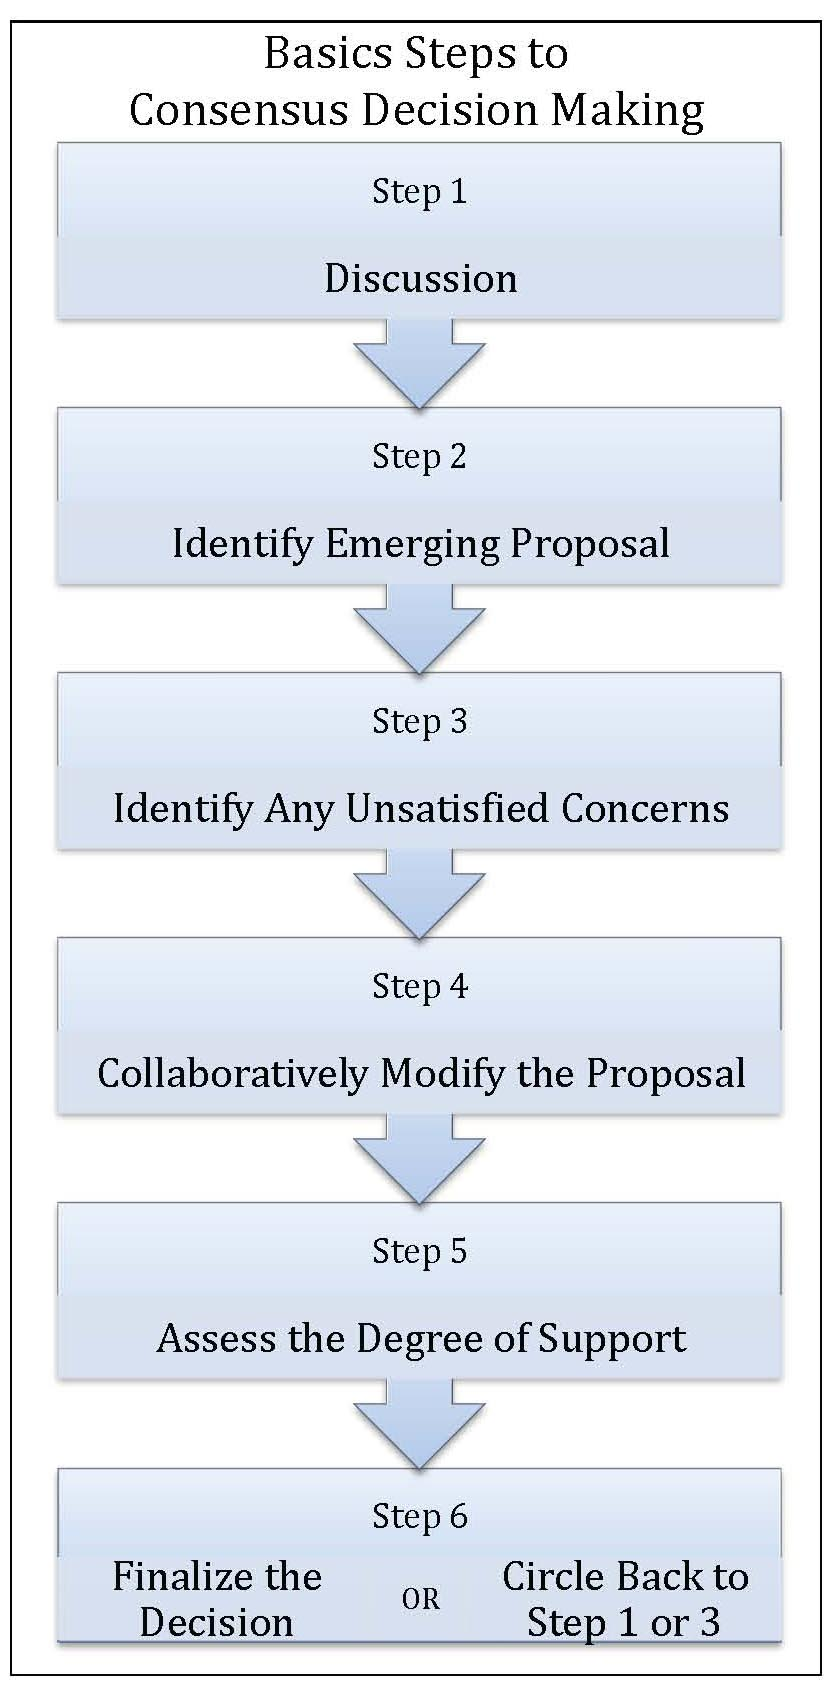 Basic Steps to Consensus Decision Making